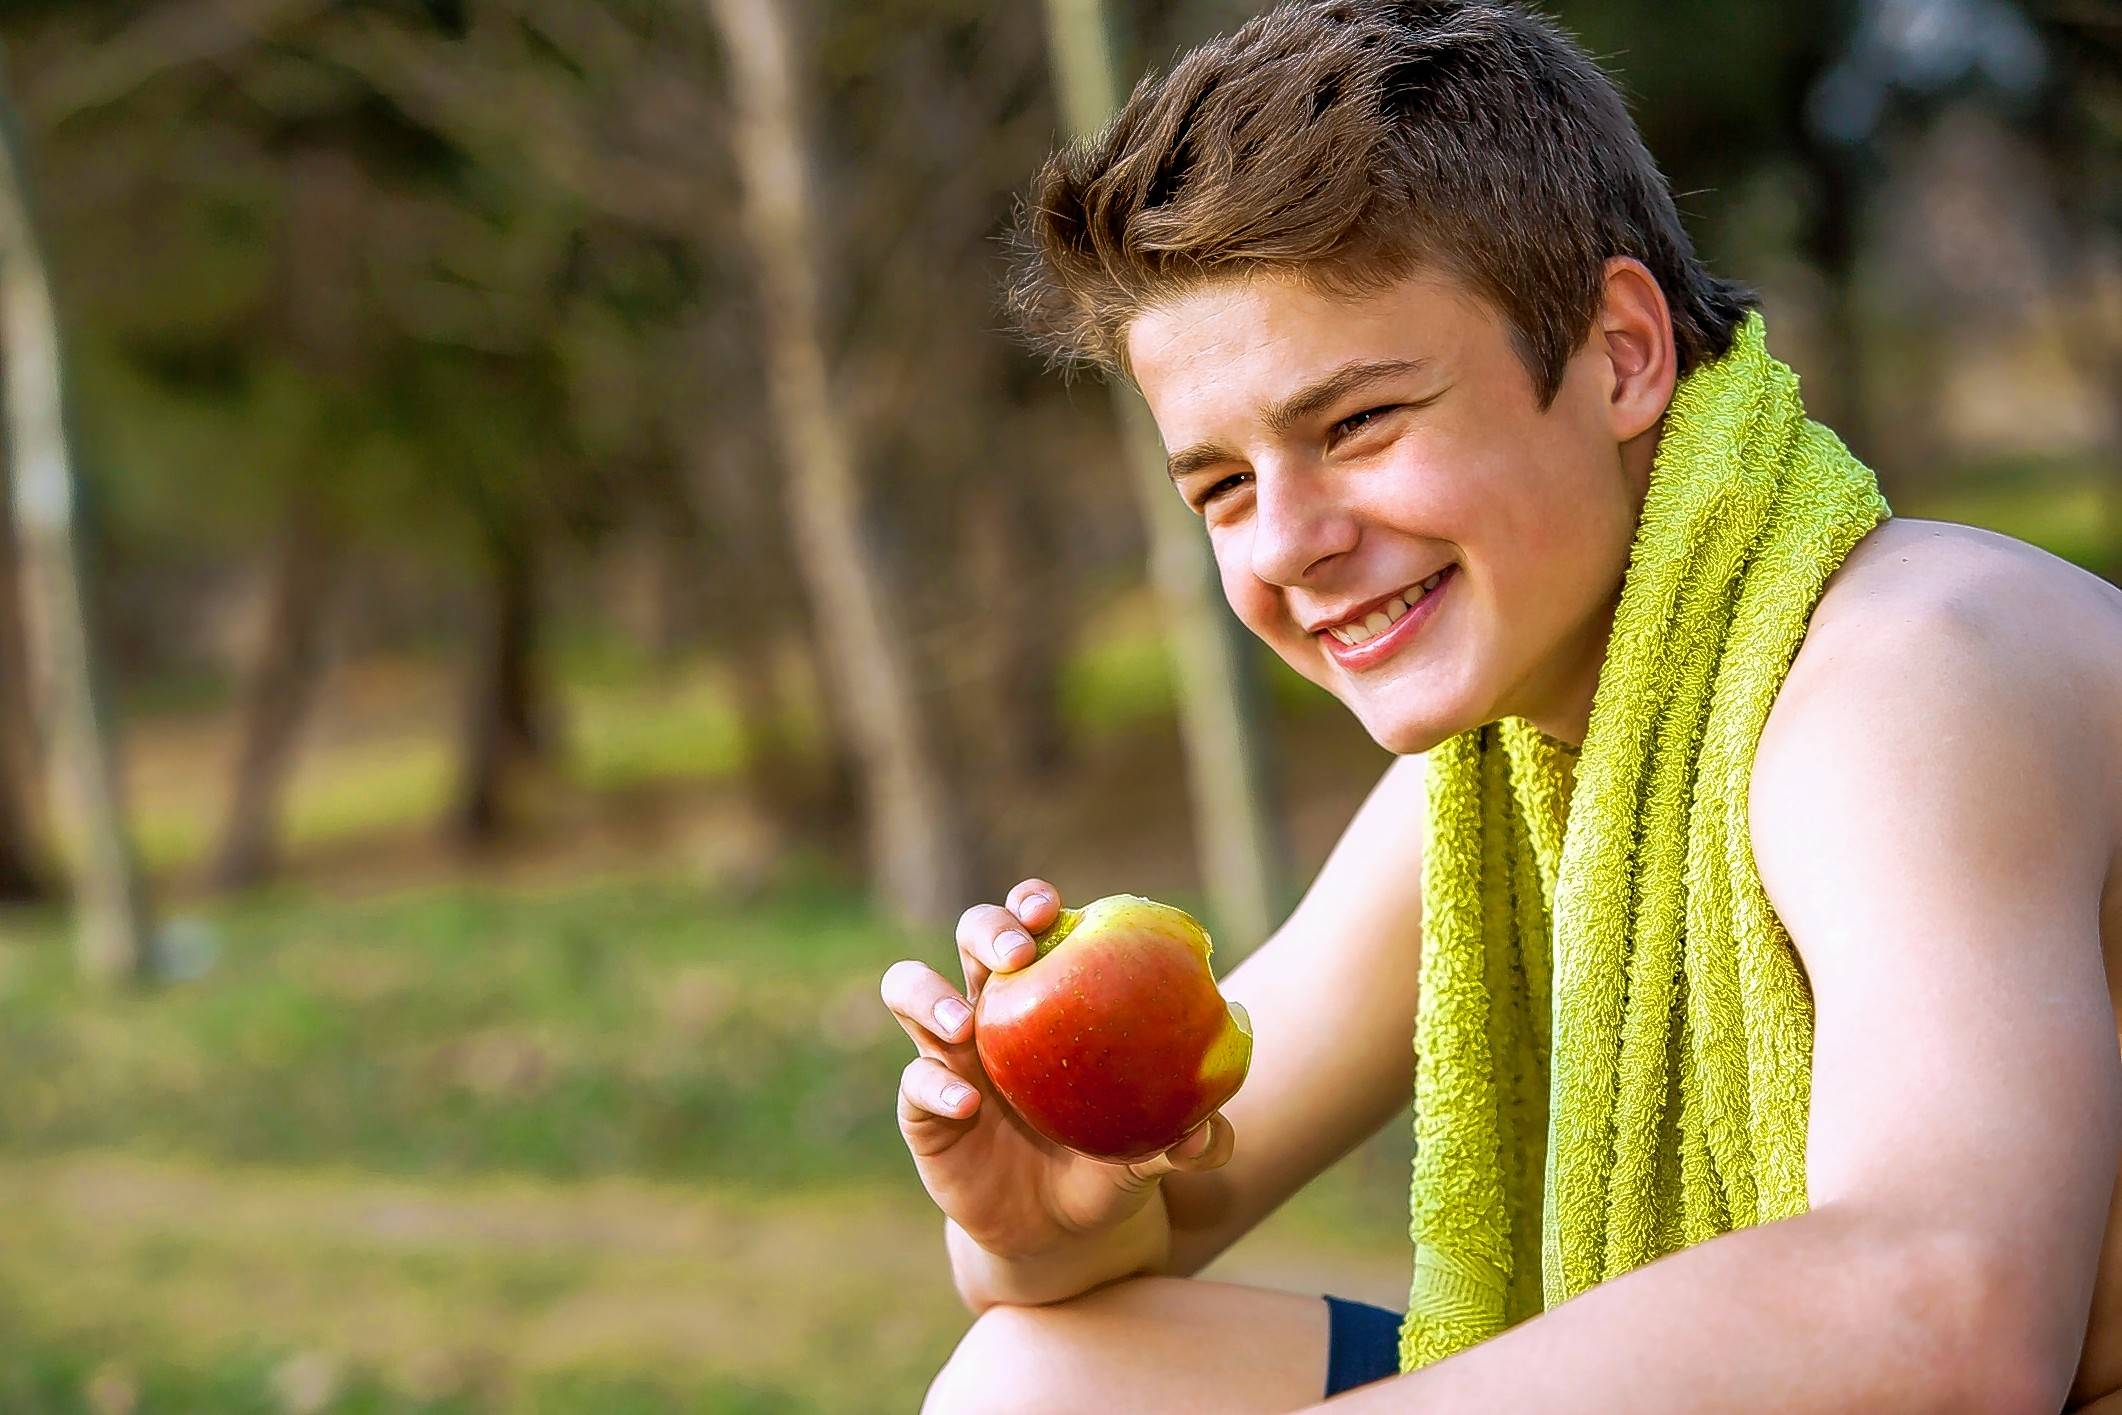 Carbohydrates such as fruit are an essential part of an athlete's diet.